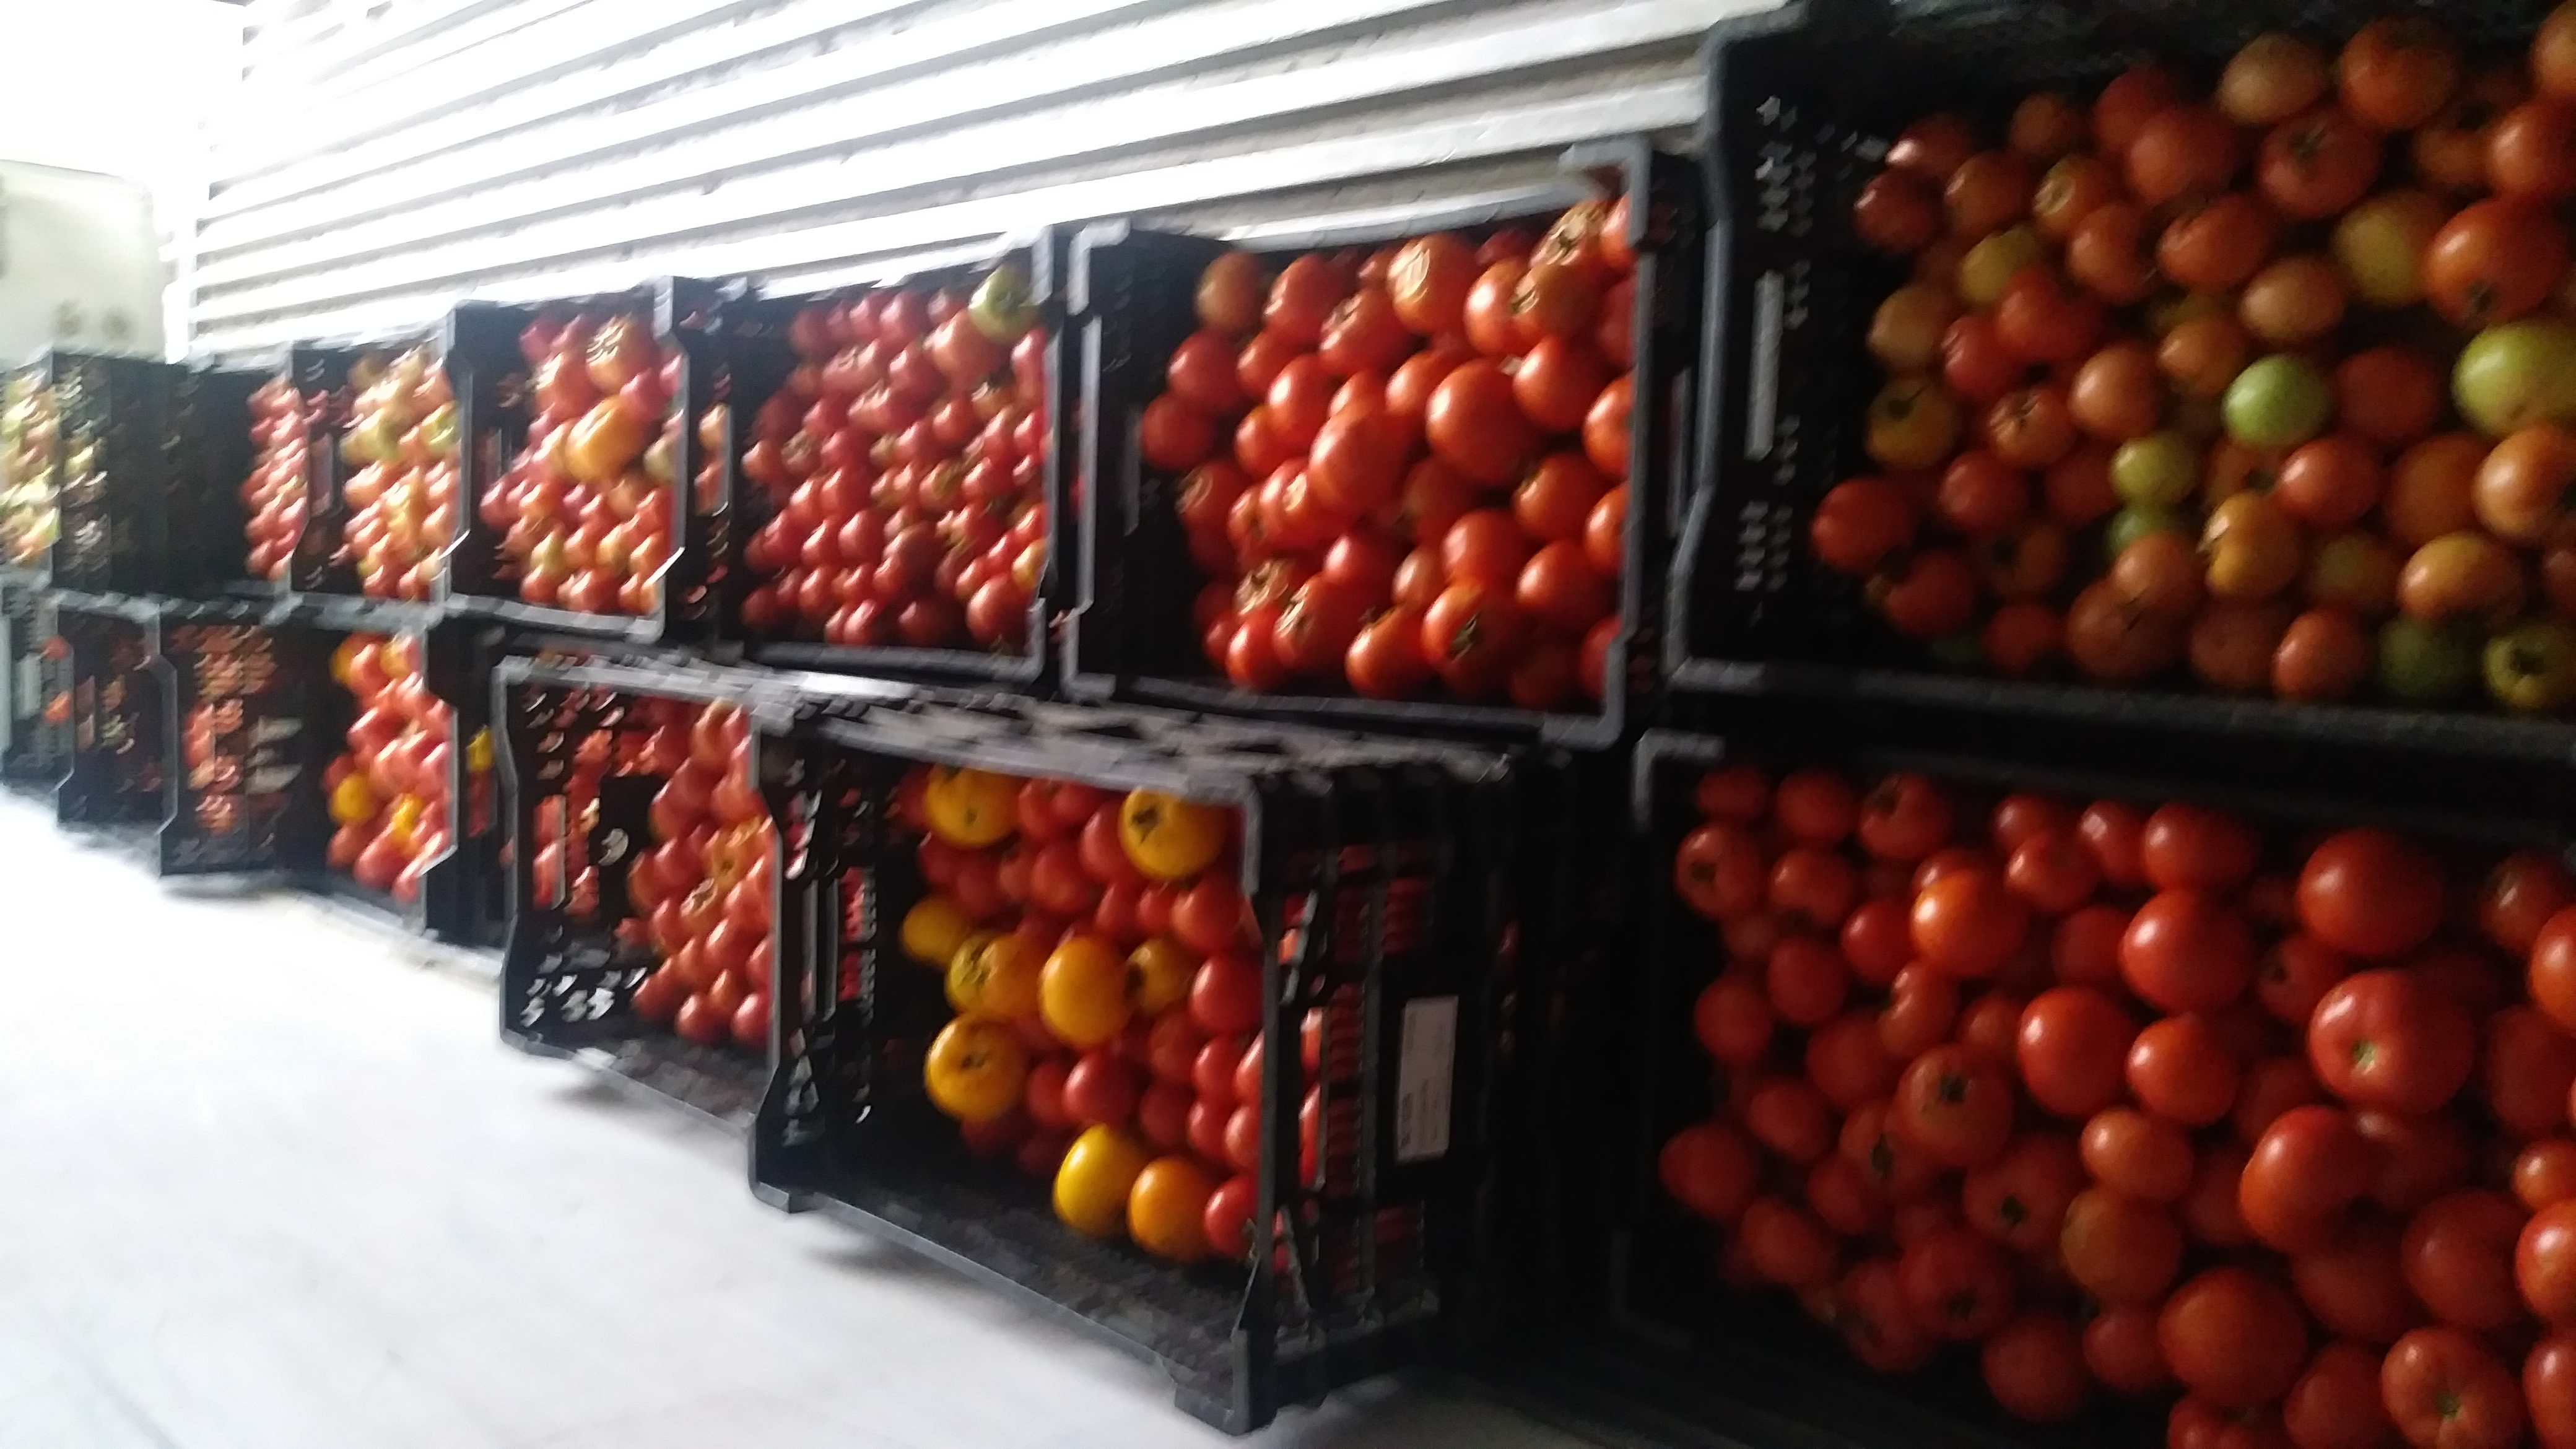 Farm Happenings for August 31, 2021 - The story of  La Tomatina